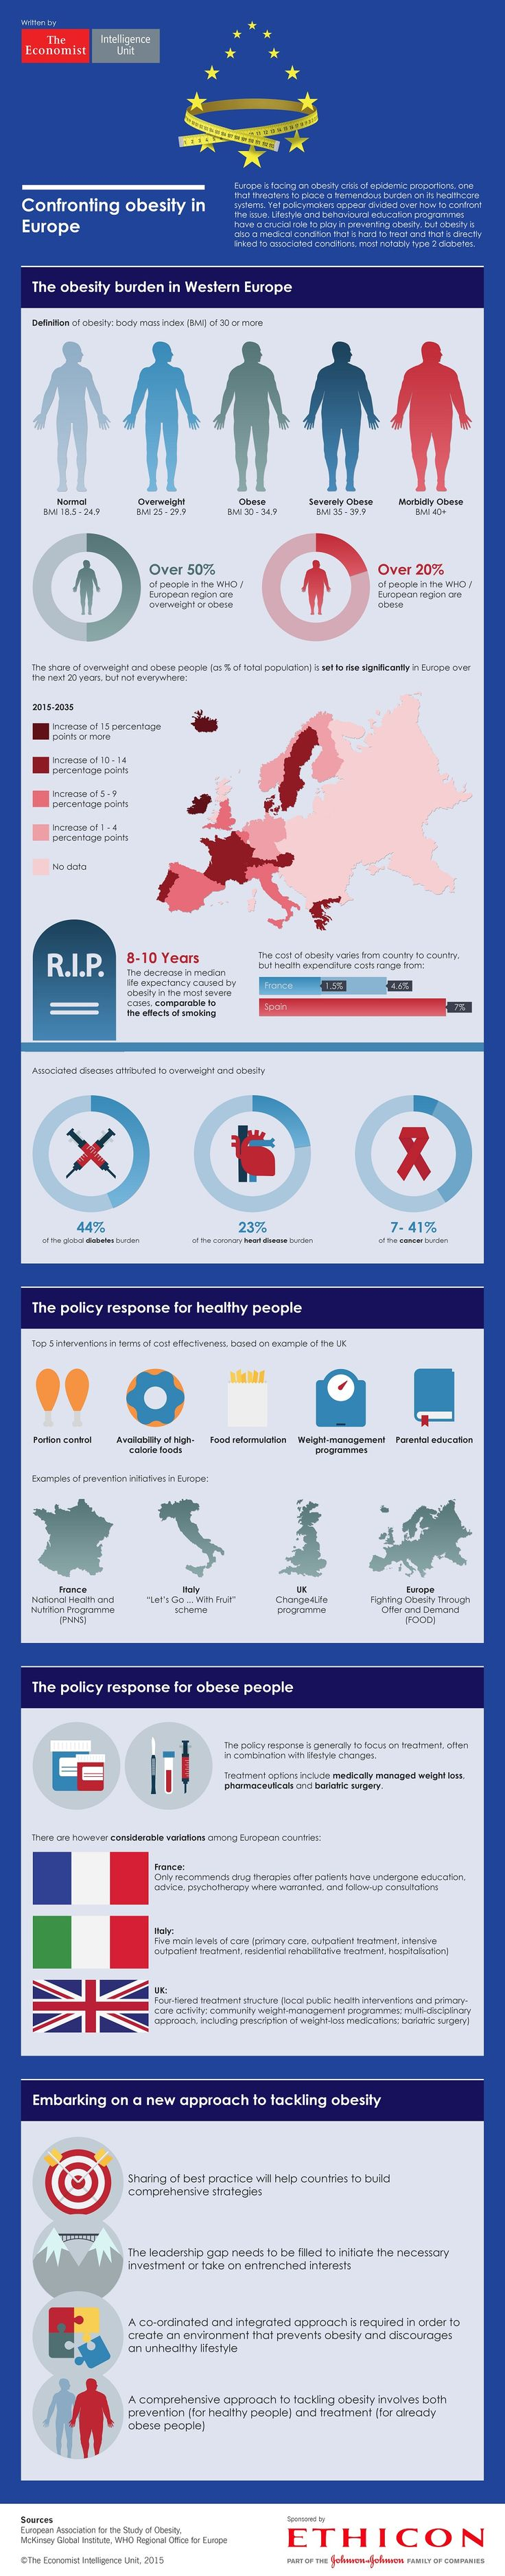 Europe is facing an obesity crisis of epidemic proportions that threatens to place a tremendous burden on its healthcare systems. But policymakers appear divided over how to deal with the issue, according to a new white paper and infographic published by The Economist Intelligence Unit and sponsored by Ethicon.